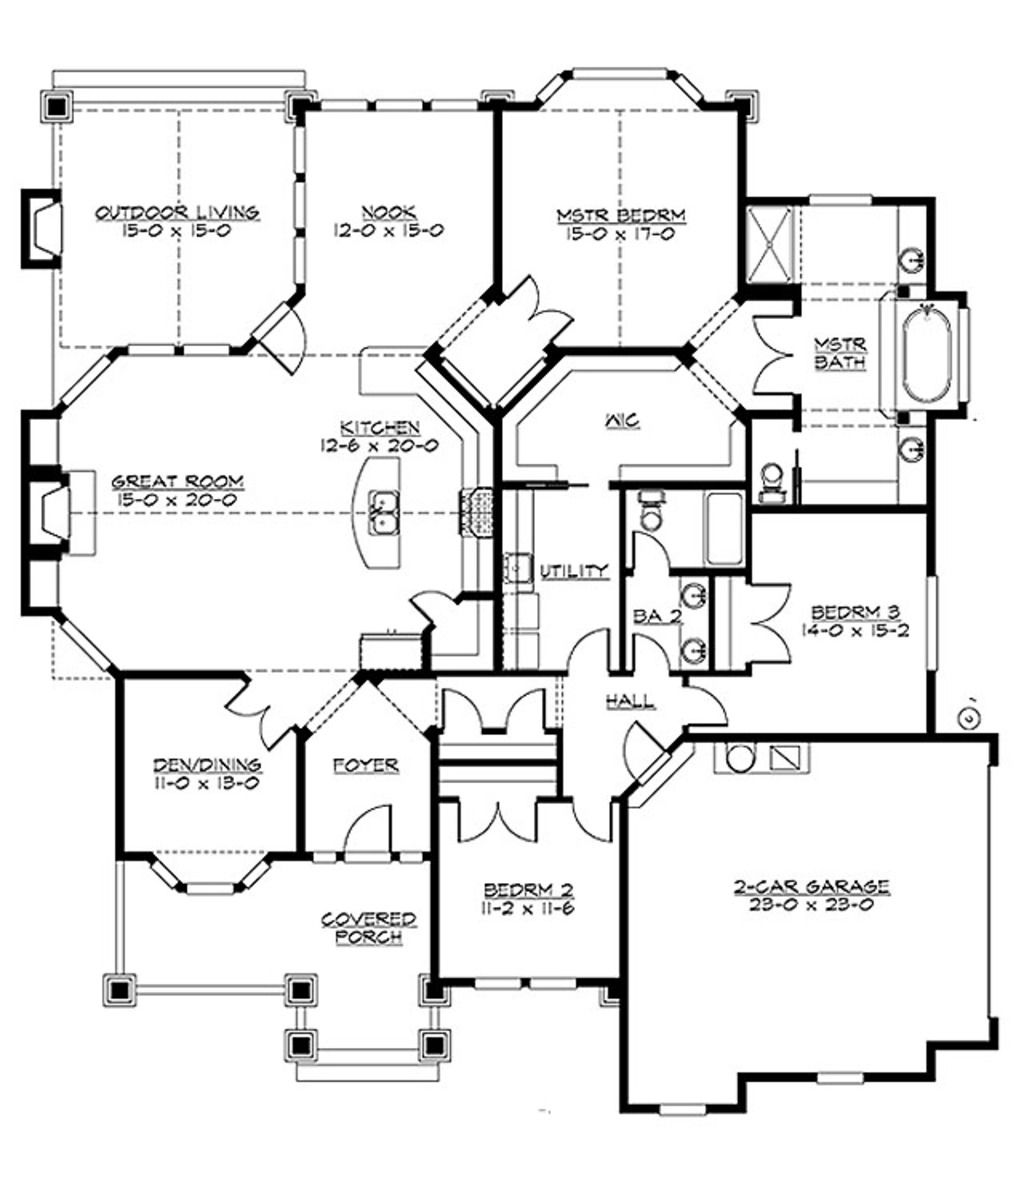 Craftsman 3 beds 2 baths 2320 sq ft plan 132 200 main for 2200 sq ft house plans